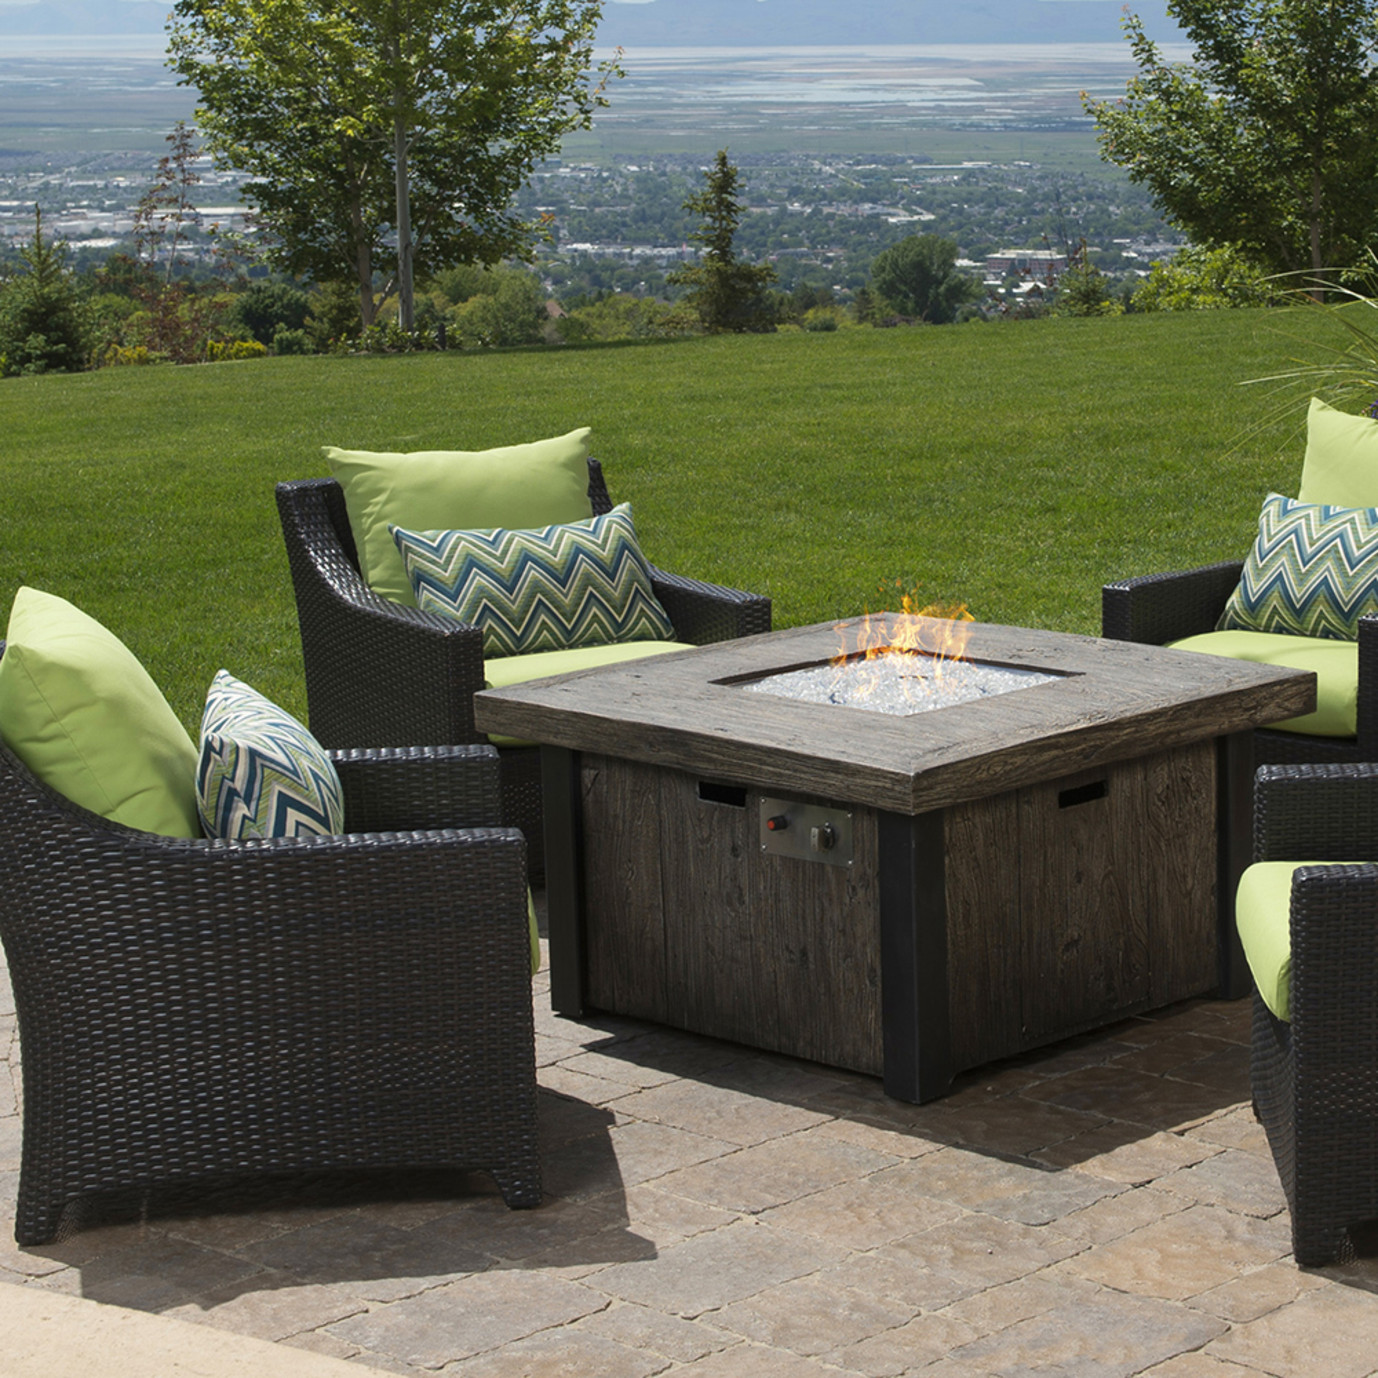 Deco™ 5pc Fire Chat Set- Ginkgo Green